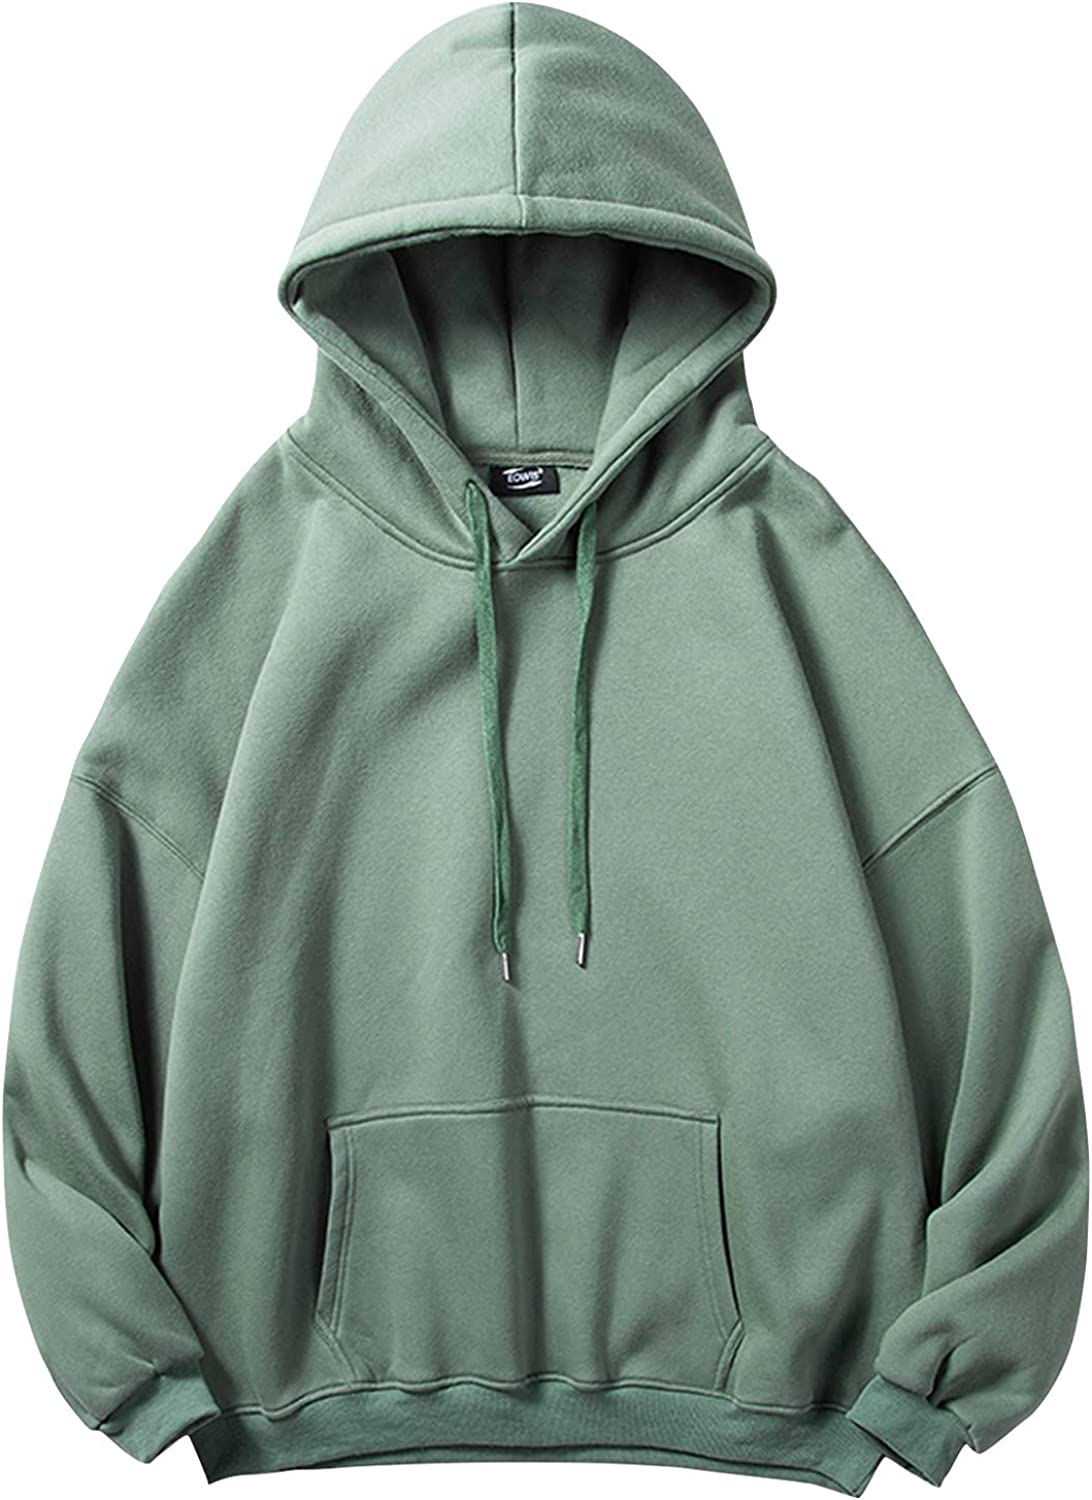 Mens Plus Size Hoodies 5XL Solid Basic Sweatshirts Casual Long Sleeve Hooded Coat Drawstring Workout Outwear with Pocket